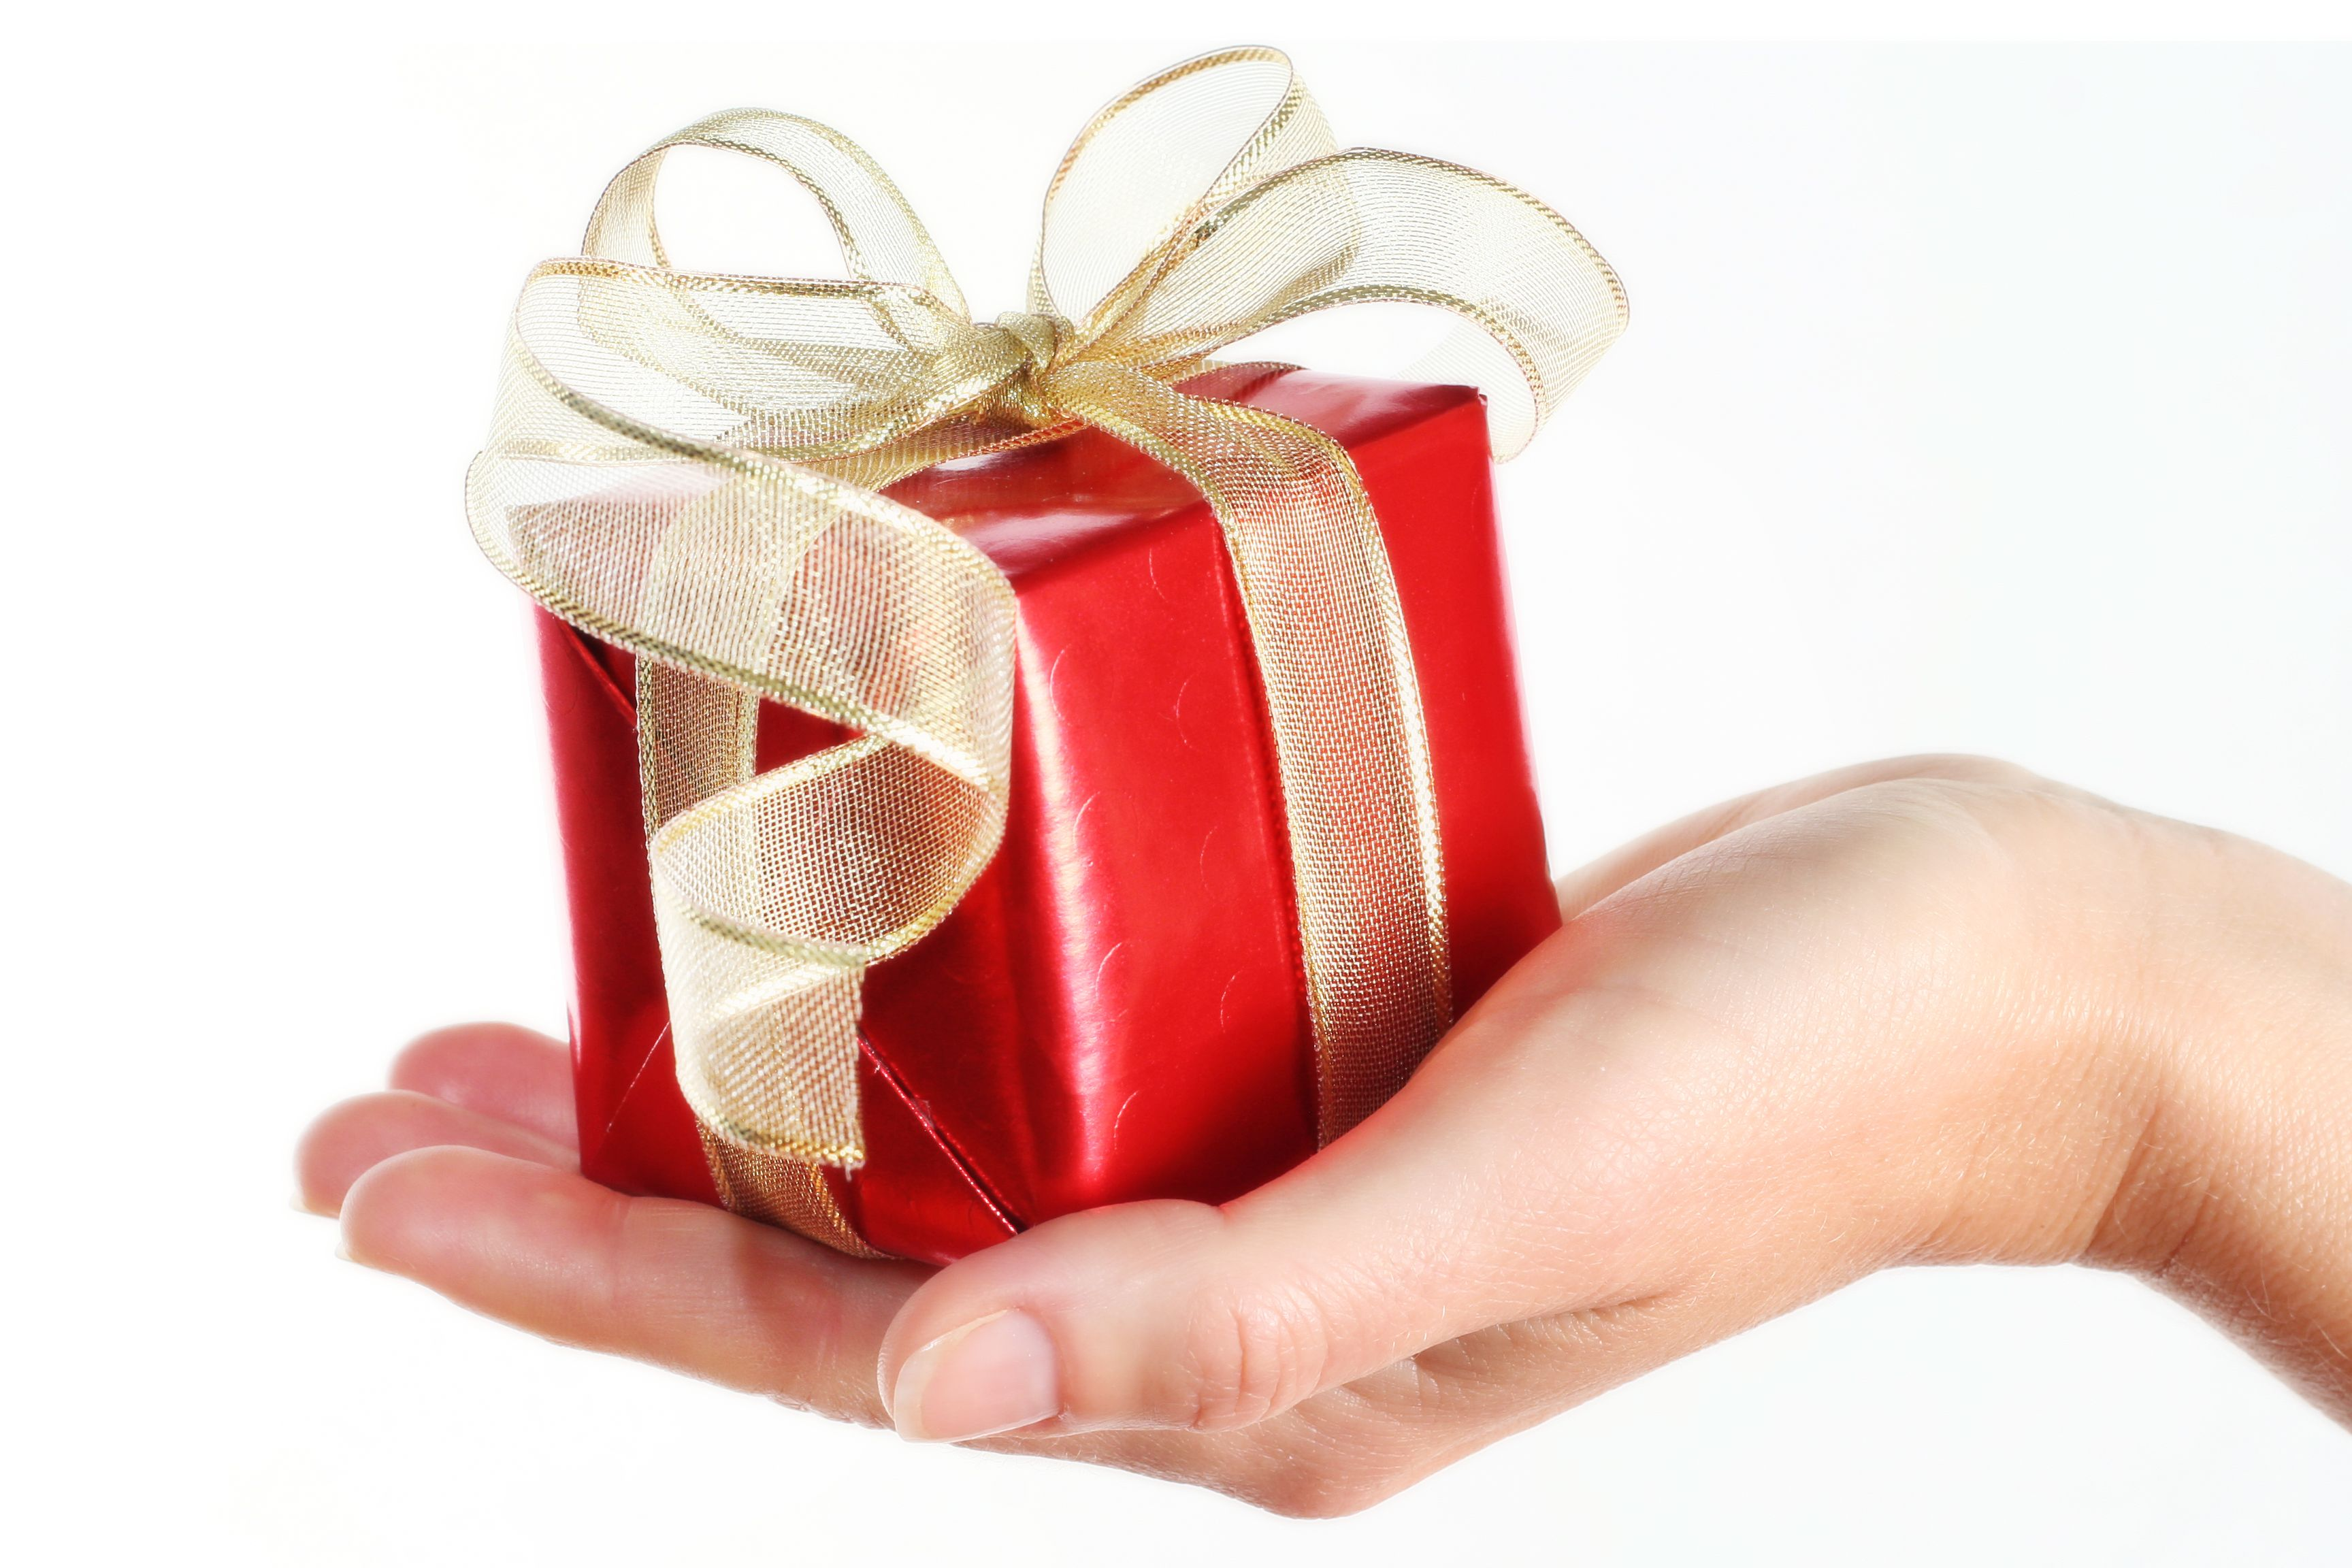 acep 2016 free gifts ask and receive